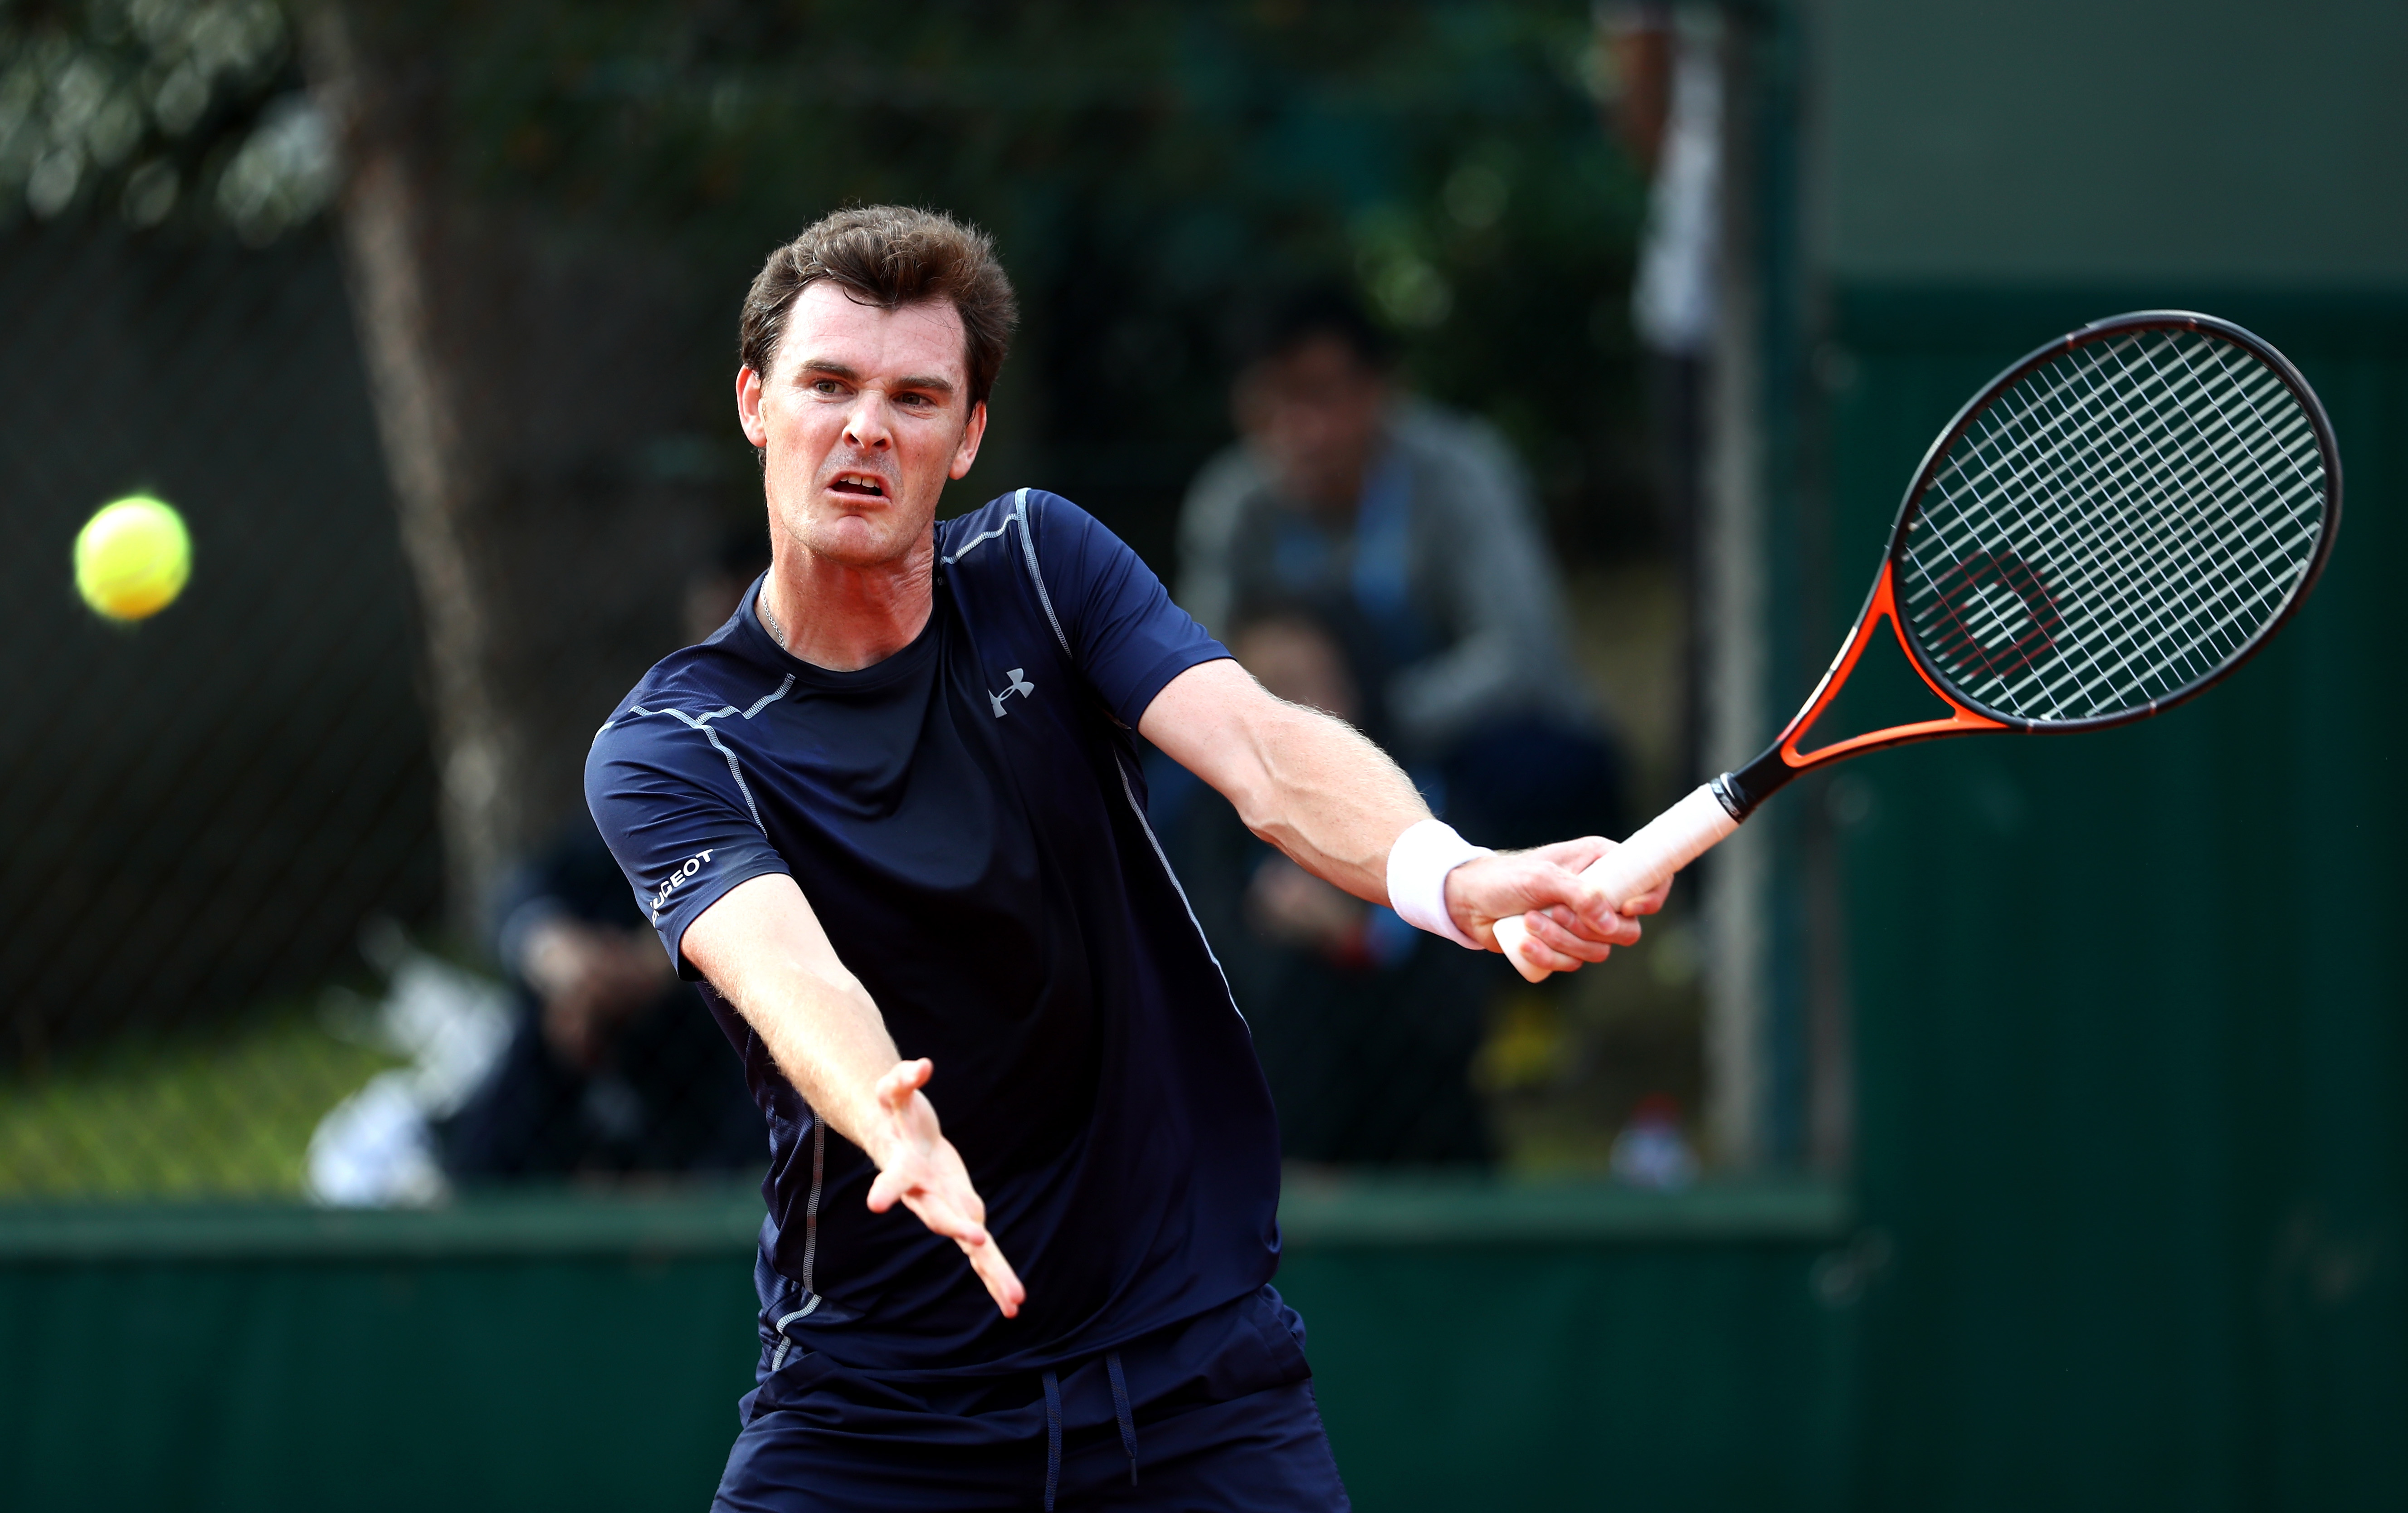 PARIS, FRANCE - MAY 26: Jamie Murray of Great Britain hits a forehand during the Mixed Doubles first round match against Daria Gavrilova and John Peers of Australia on day five of the 2016 French Open at Roland Garros on May 26, 2016 in Paris, France. (Photo by Julian Finney/Getty Images)